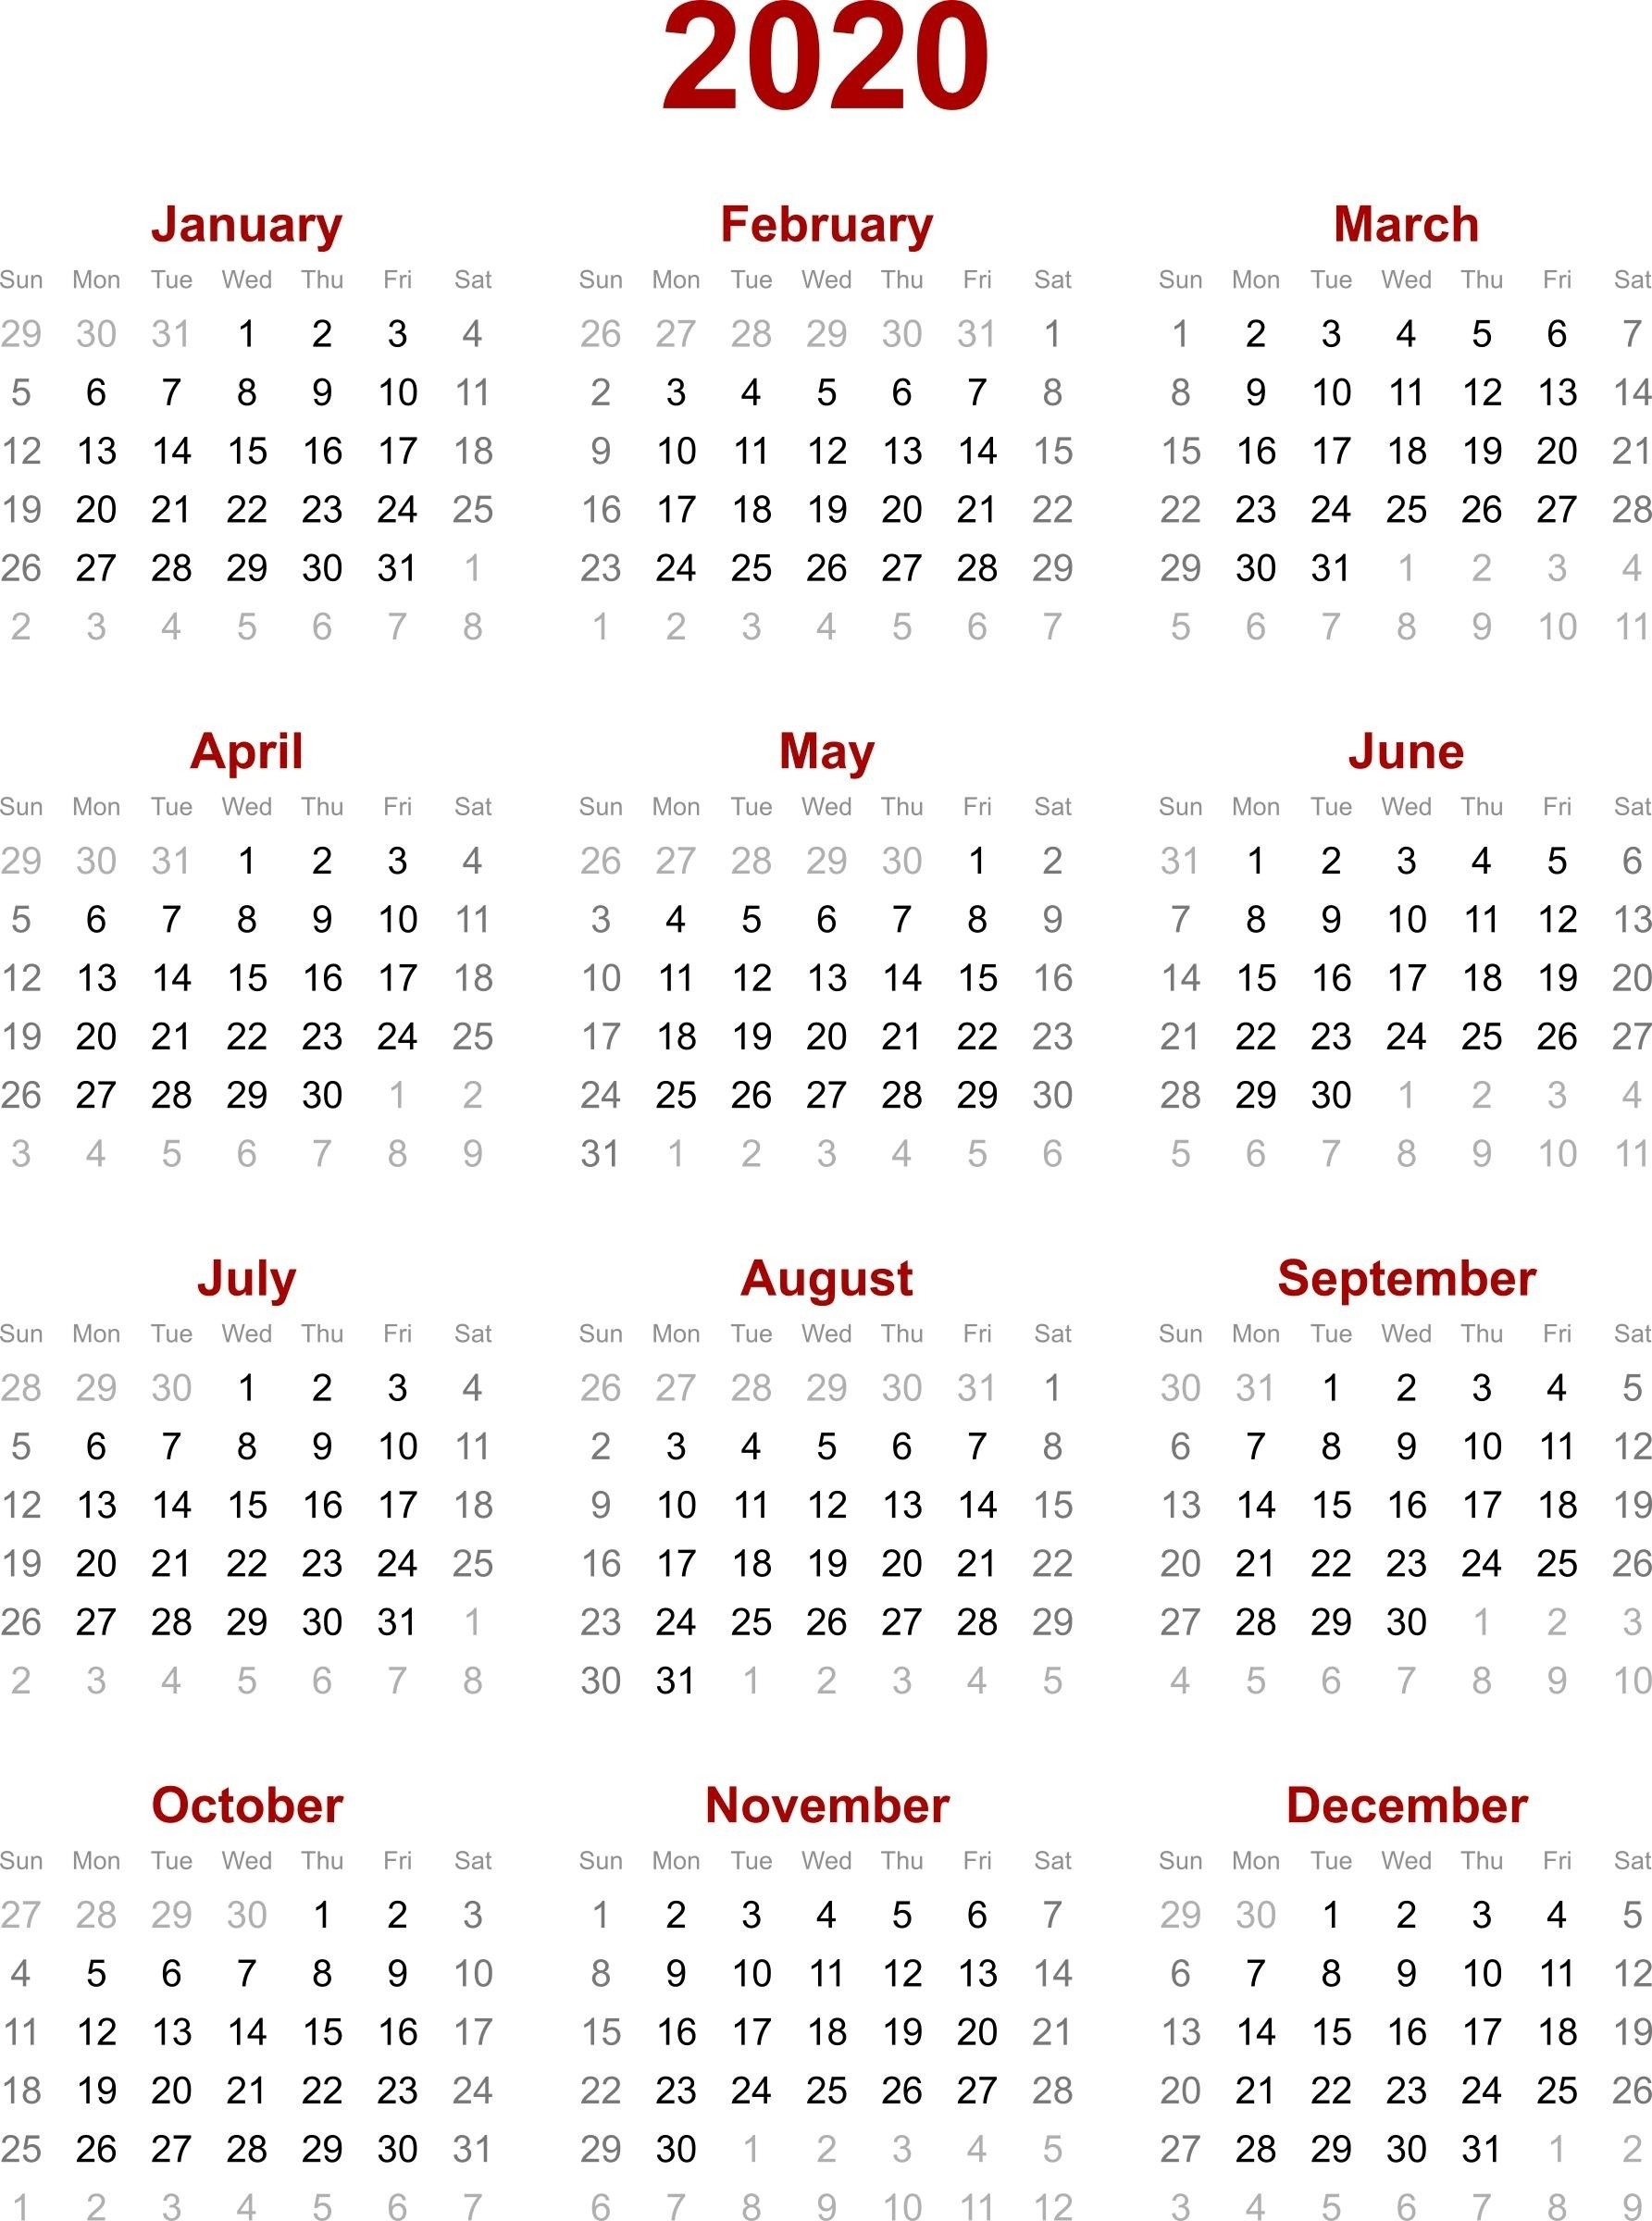 Remarkable 2020 Calendar Singapore Holiday • Printable Blank-Calendar Indicating The Holidays